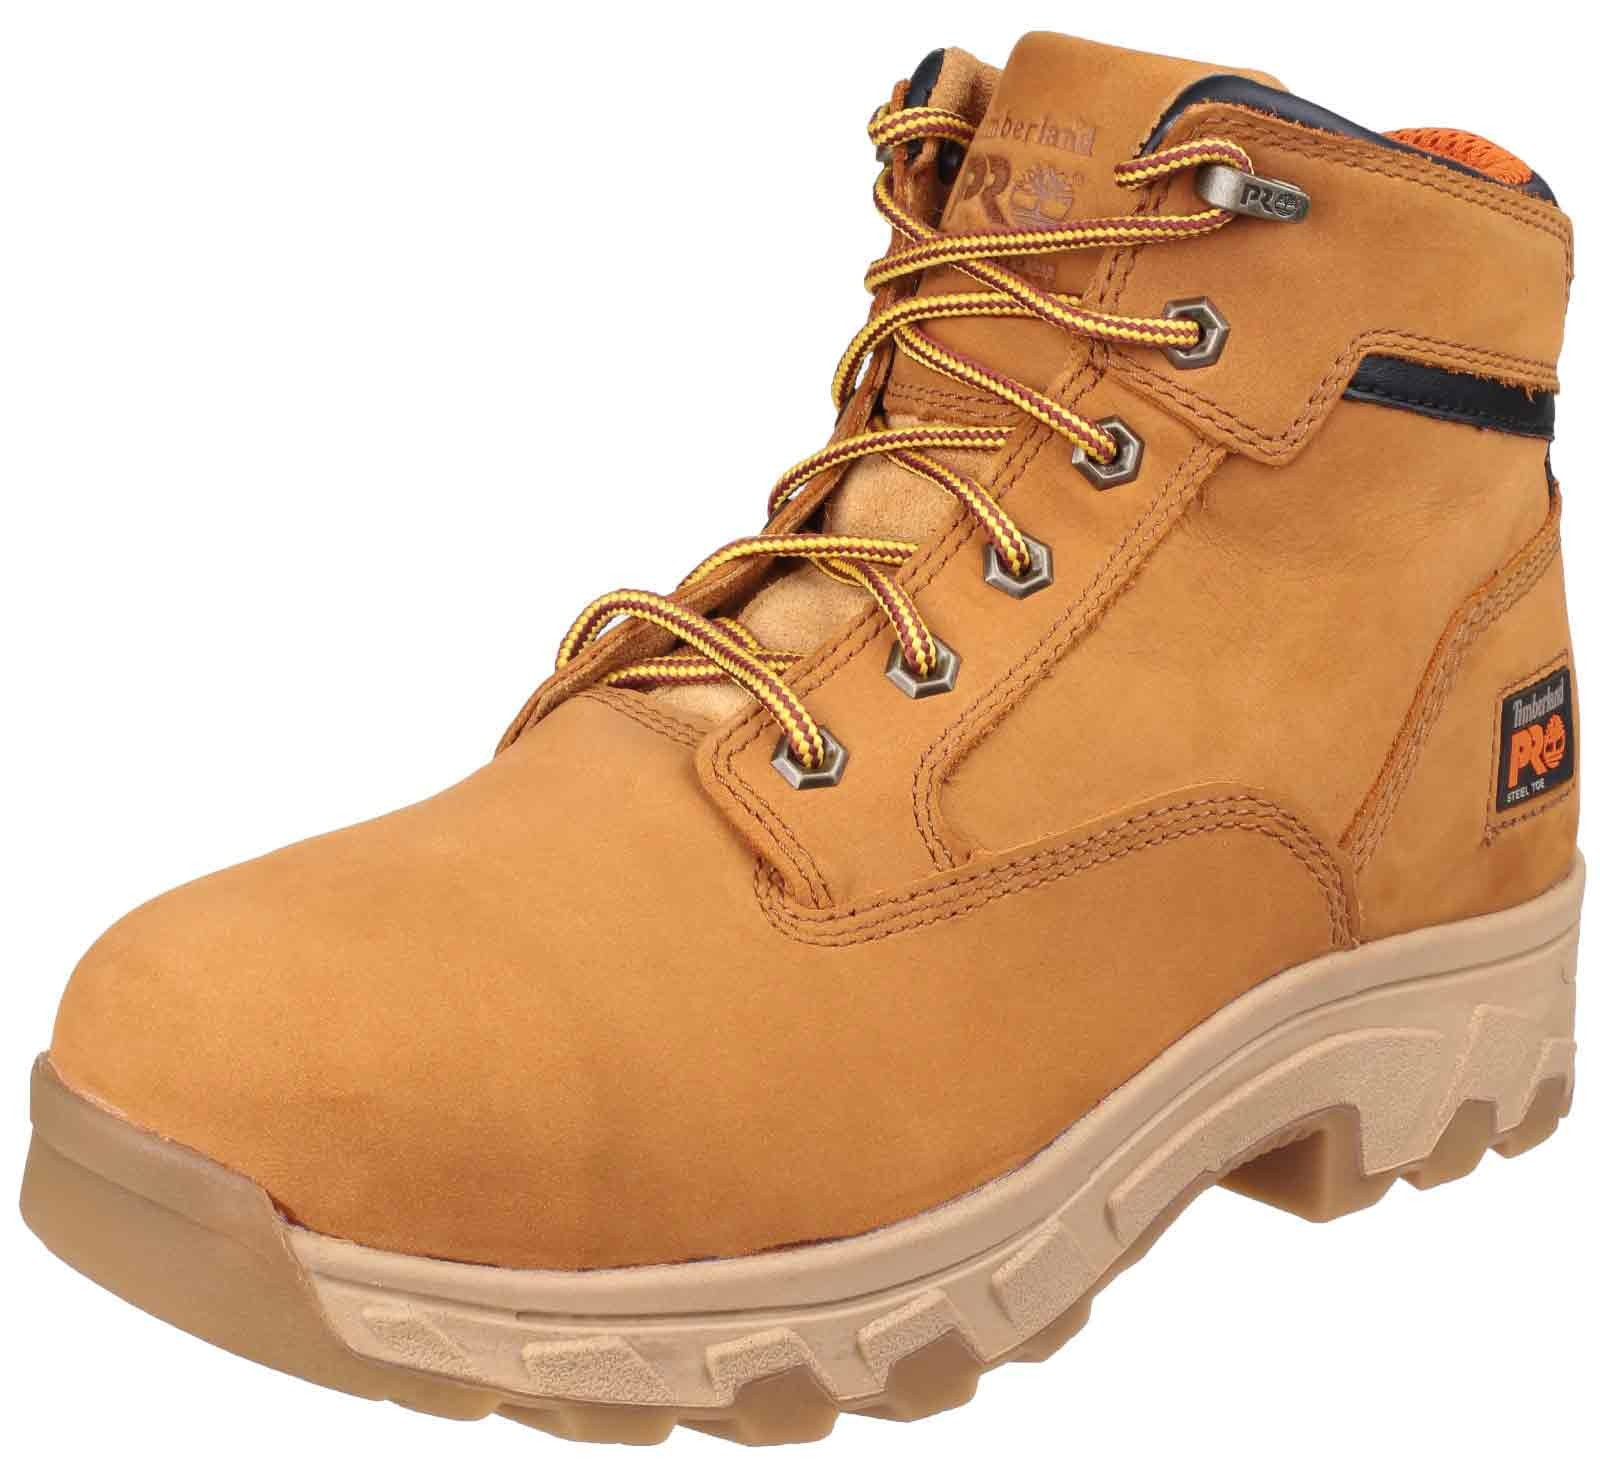 076e6f6fb4d Timberland Pro Workwear Workstead Water Resistant Lace up Safety ...